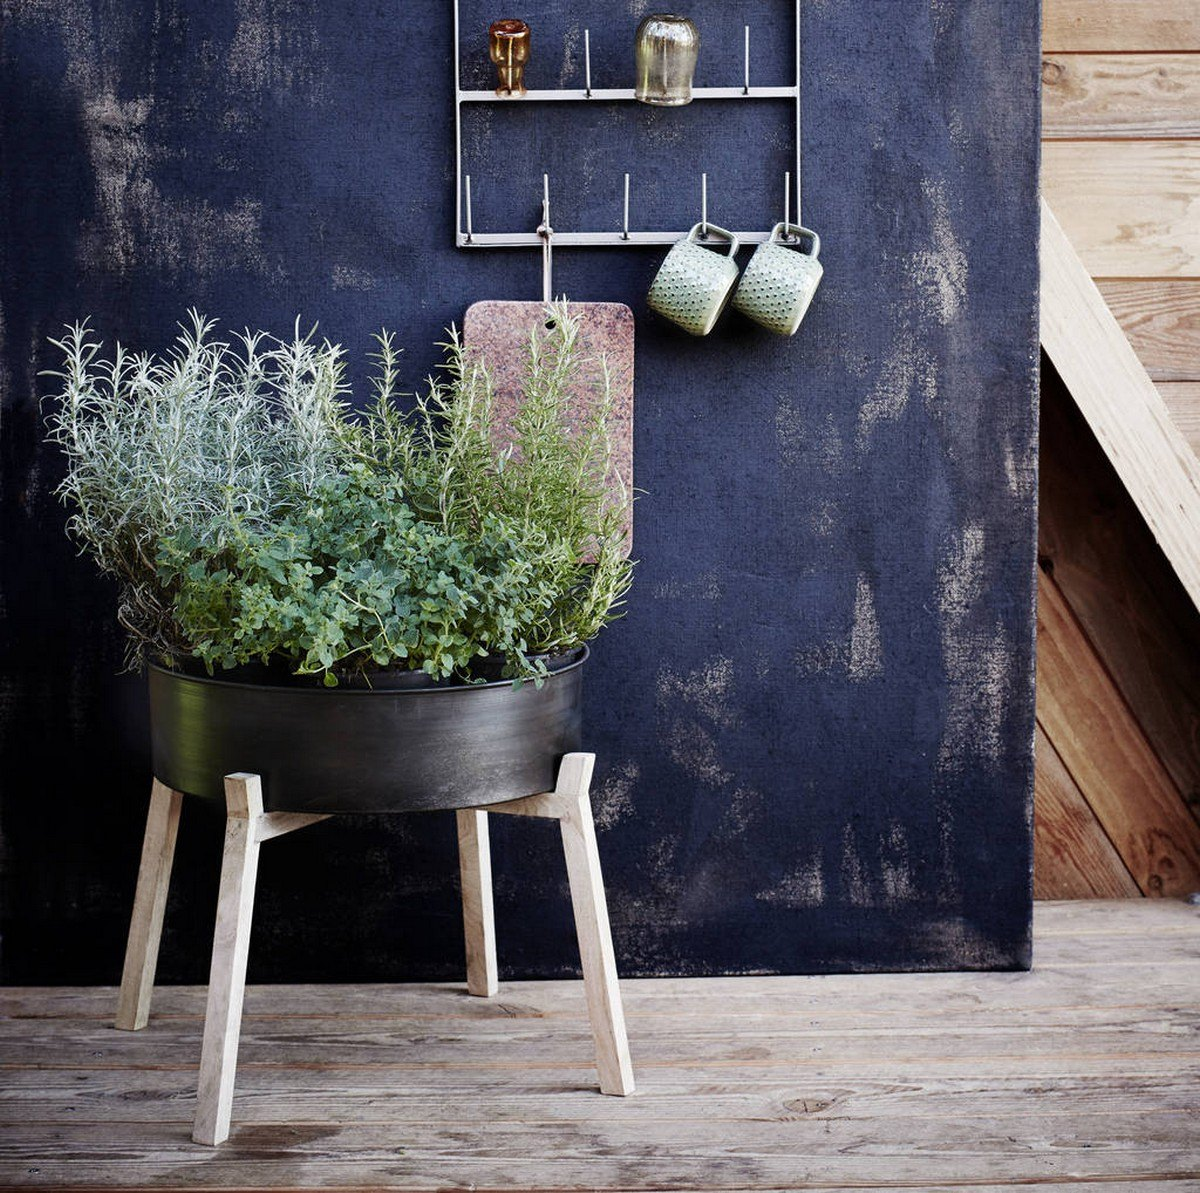 It's time to turn those plants that you love so much into something more than just a source of green for your windowsill.